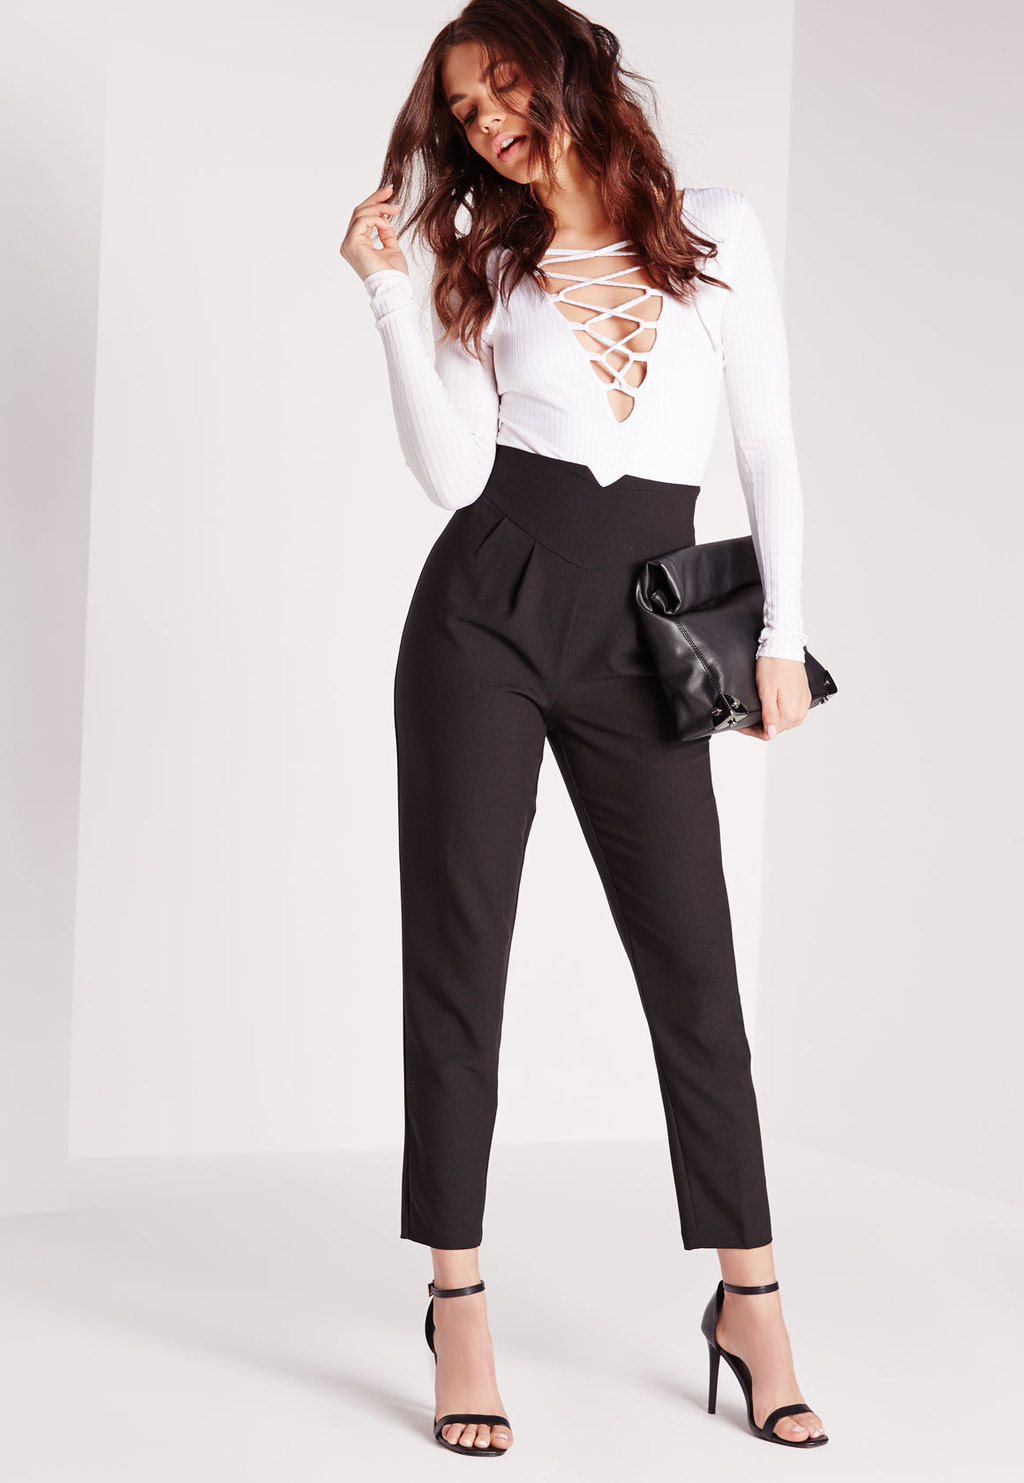 Super High Waist Notch Cigarette Trousers Black, Black - pattern: plain; waist: high rise; hip detail: draws attention to hips; predominant colour: black; length: ankle length; fibres: polyester/polyamide - 100%; fit: tapered; pattern type: fabric; texture group: other - light to midweight; style: standard; occasions: creative work; season: s/s 2016; wardrobe: basic